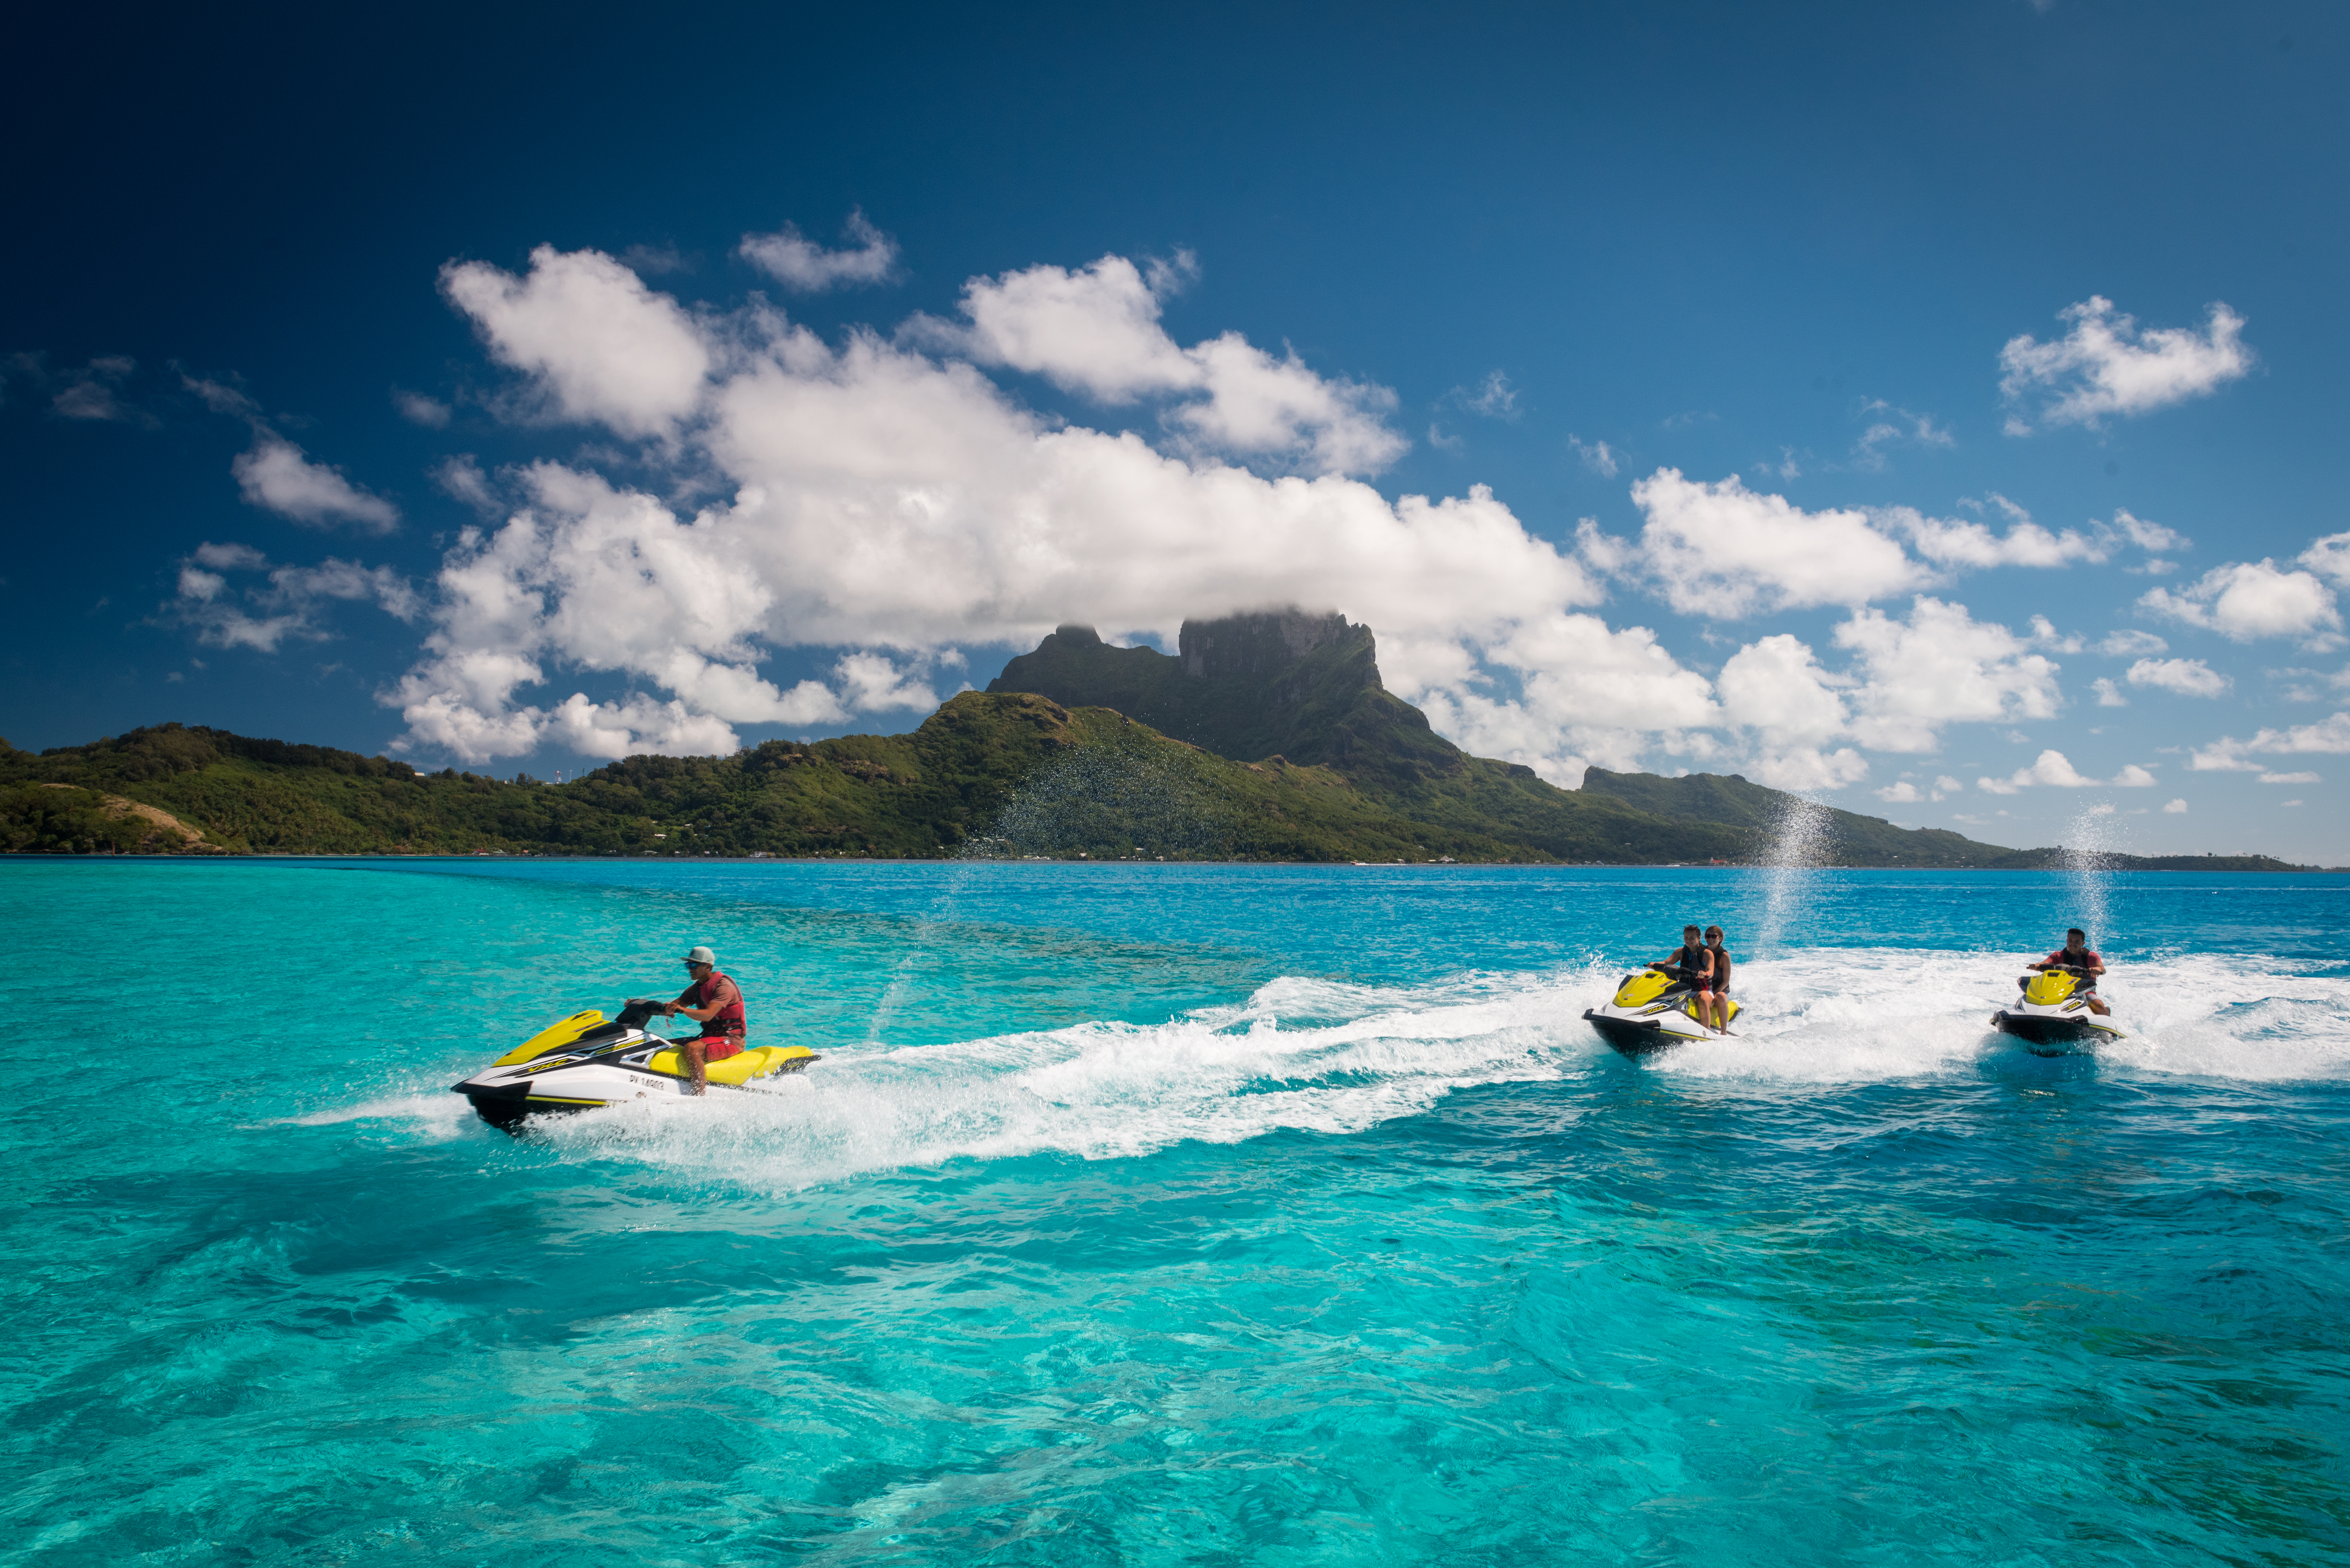 https://tahititourisme.cl/wp-content/uploads/2017/08/DSC_6023.jpg